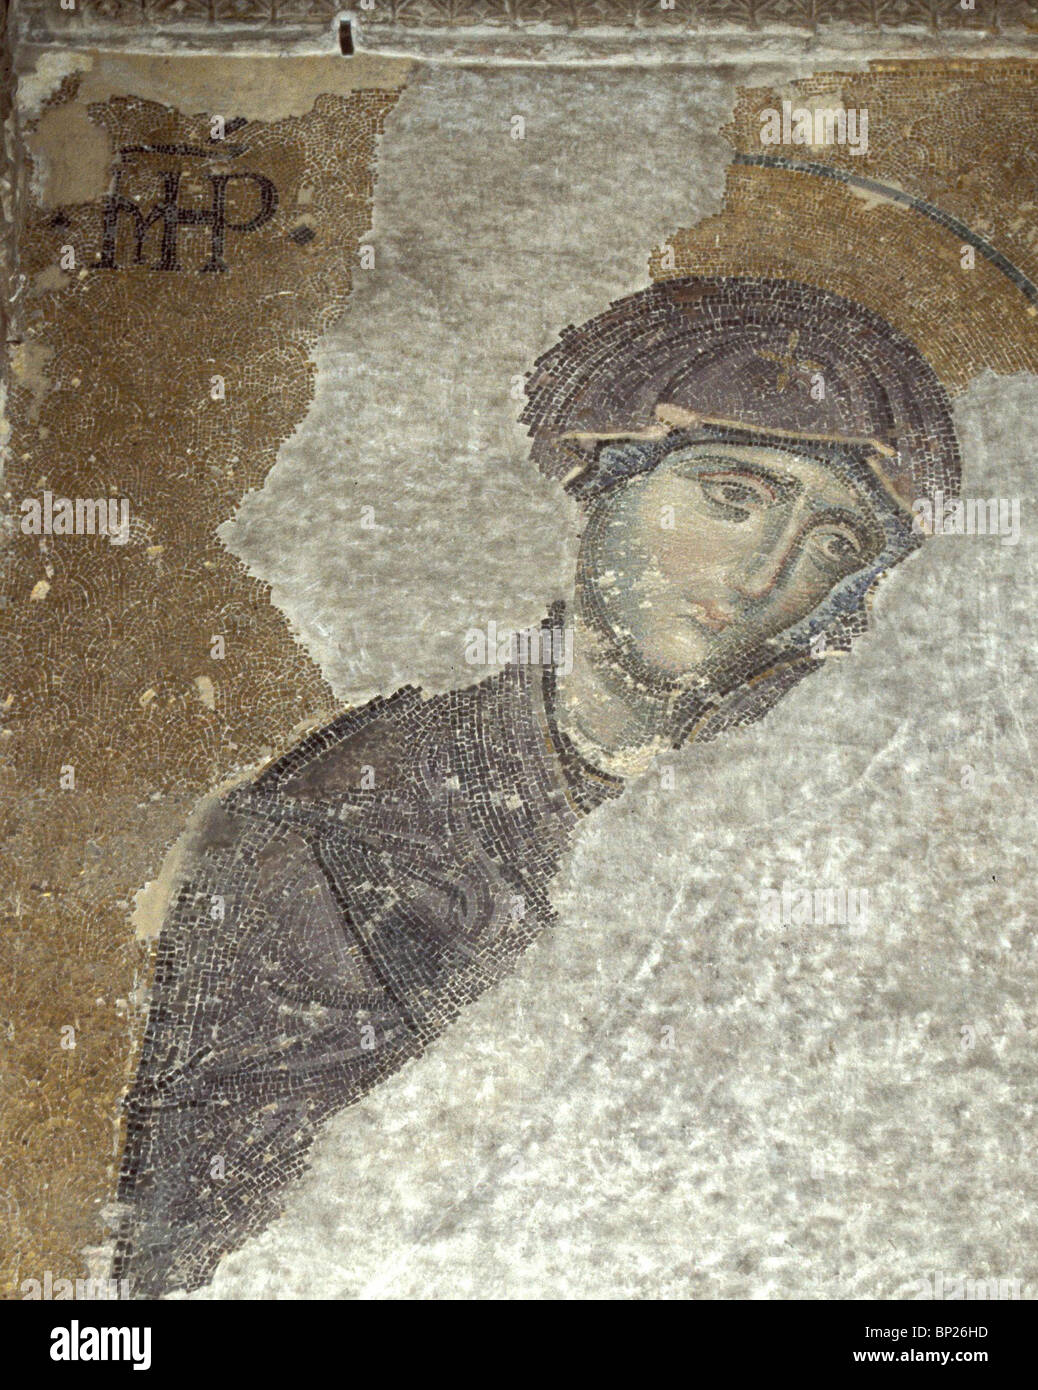 1096. THE VIRGIN MARY, 9TH. C. MOSAIC FROM HAGIA SOPHIA, ISTAMBUL - Stock Image